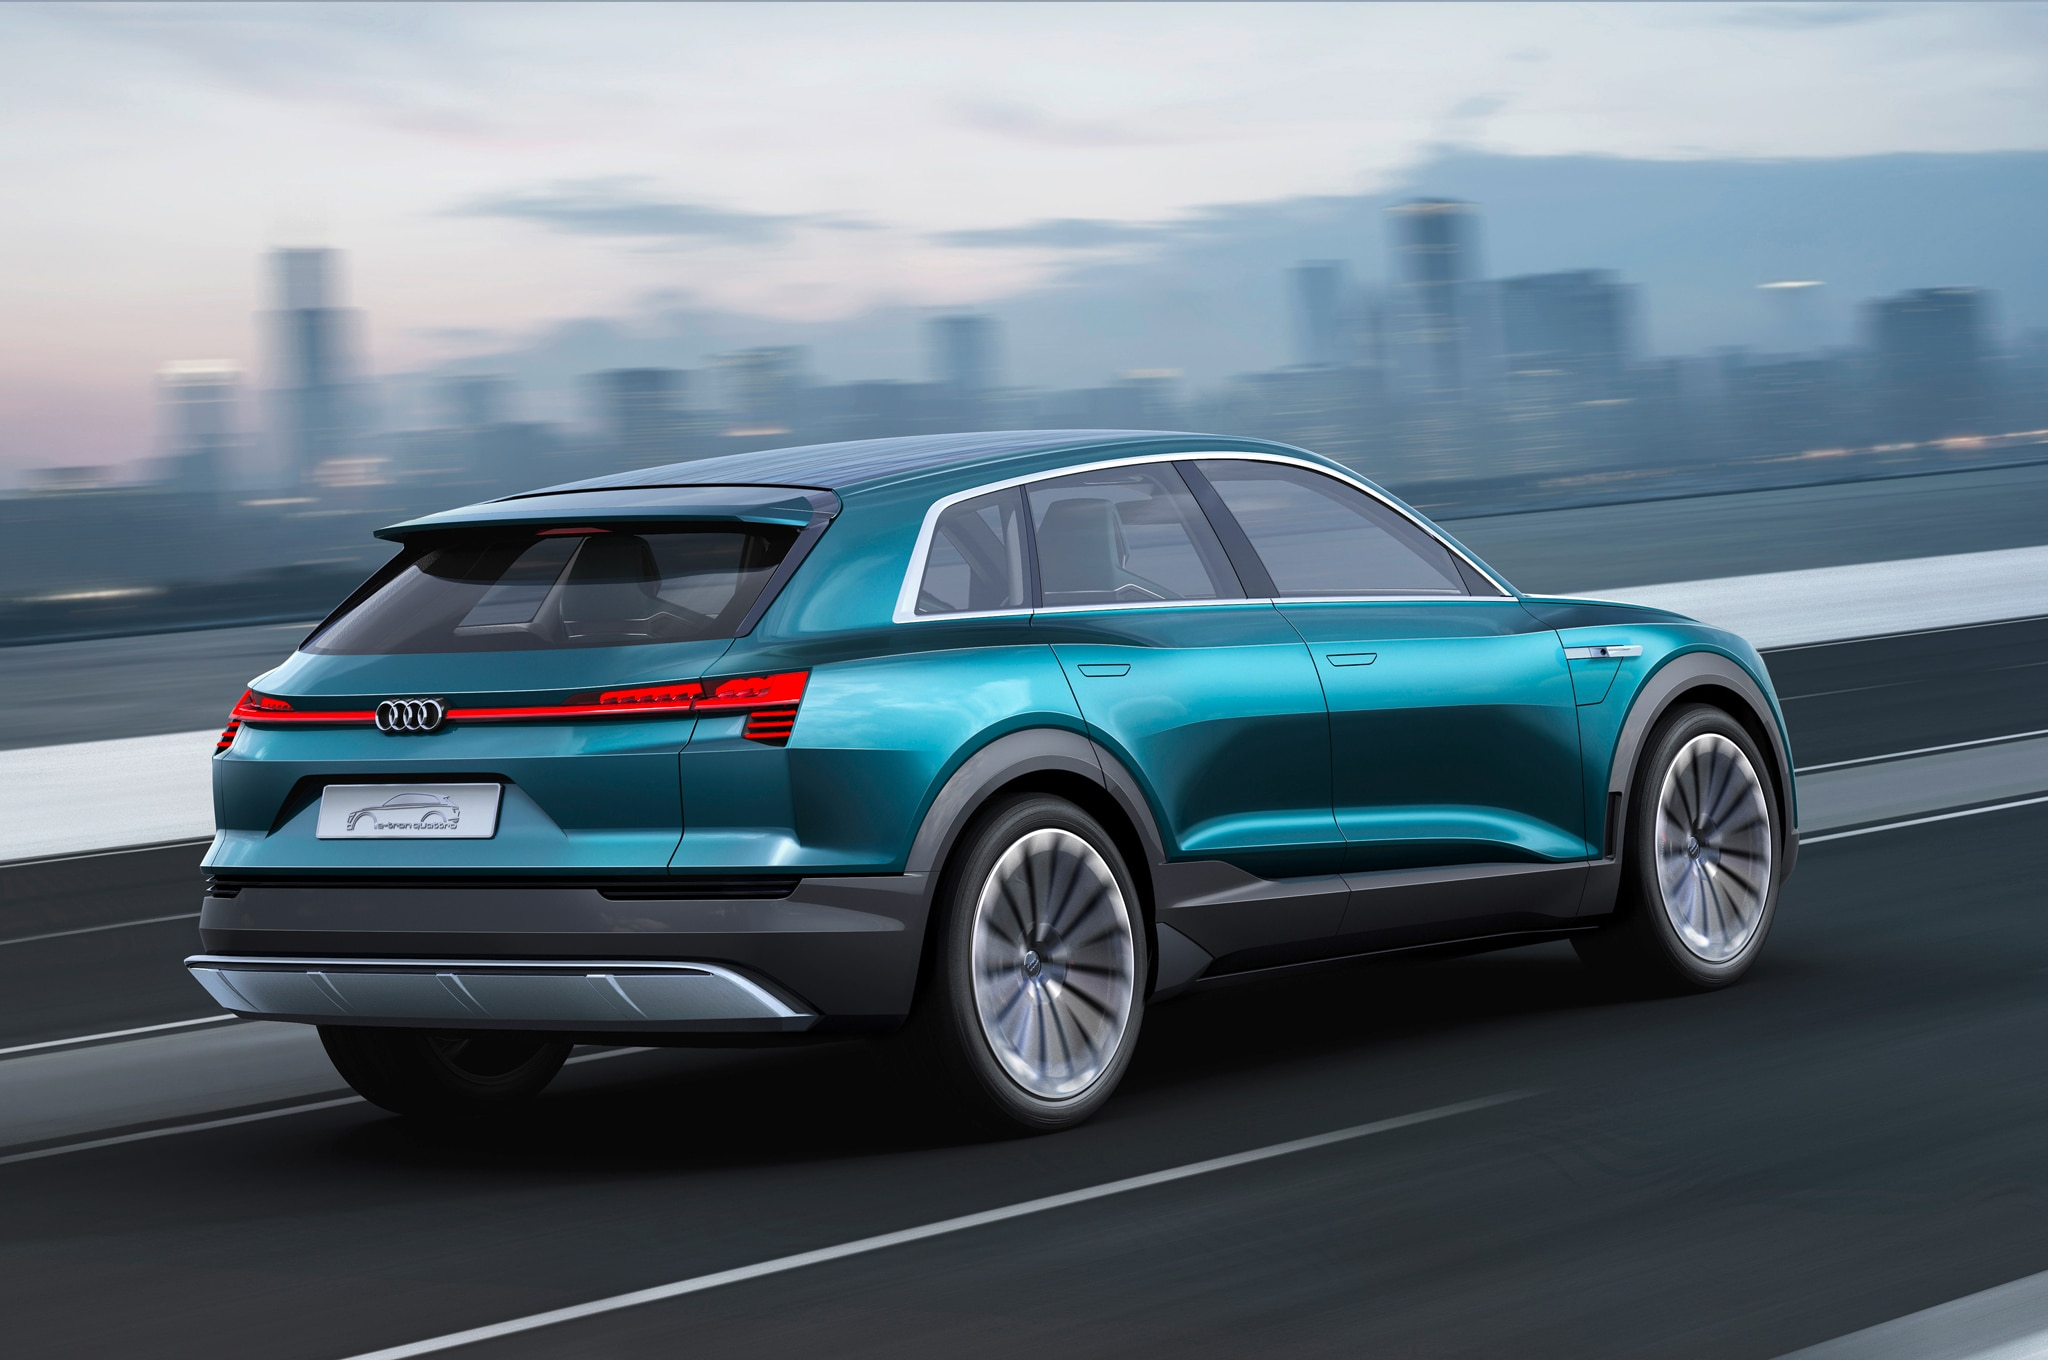 2018 audi electric suv. exellent audi show more in 2018 audi electric suv n